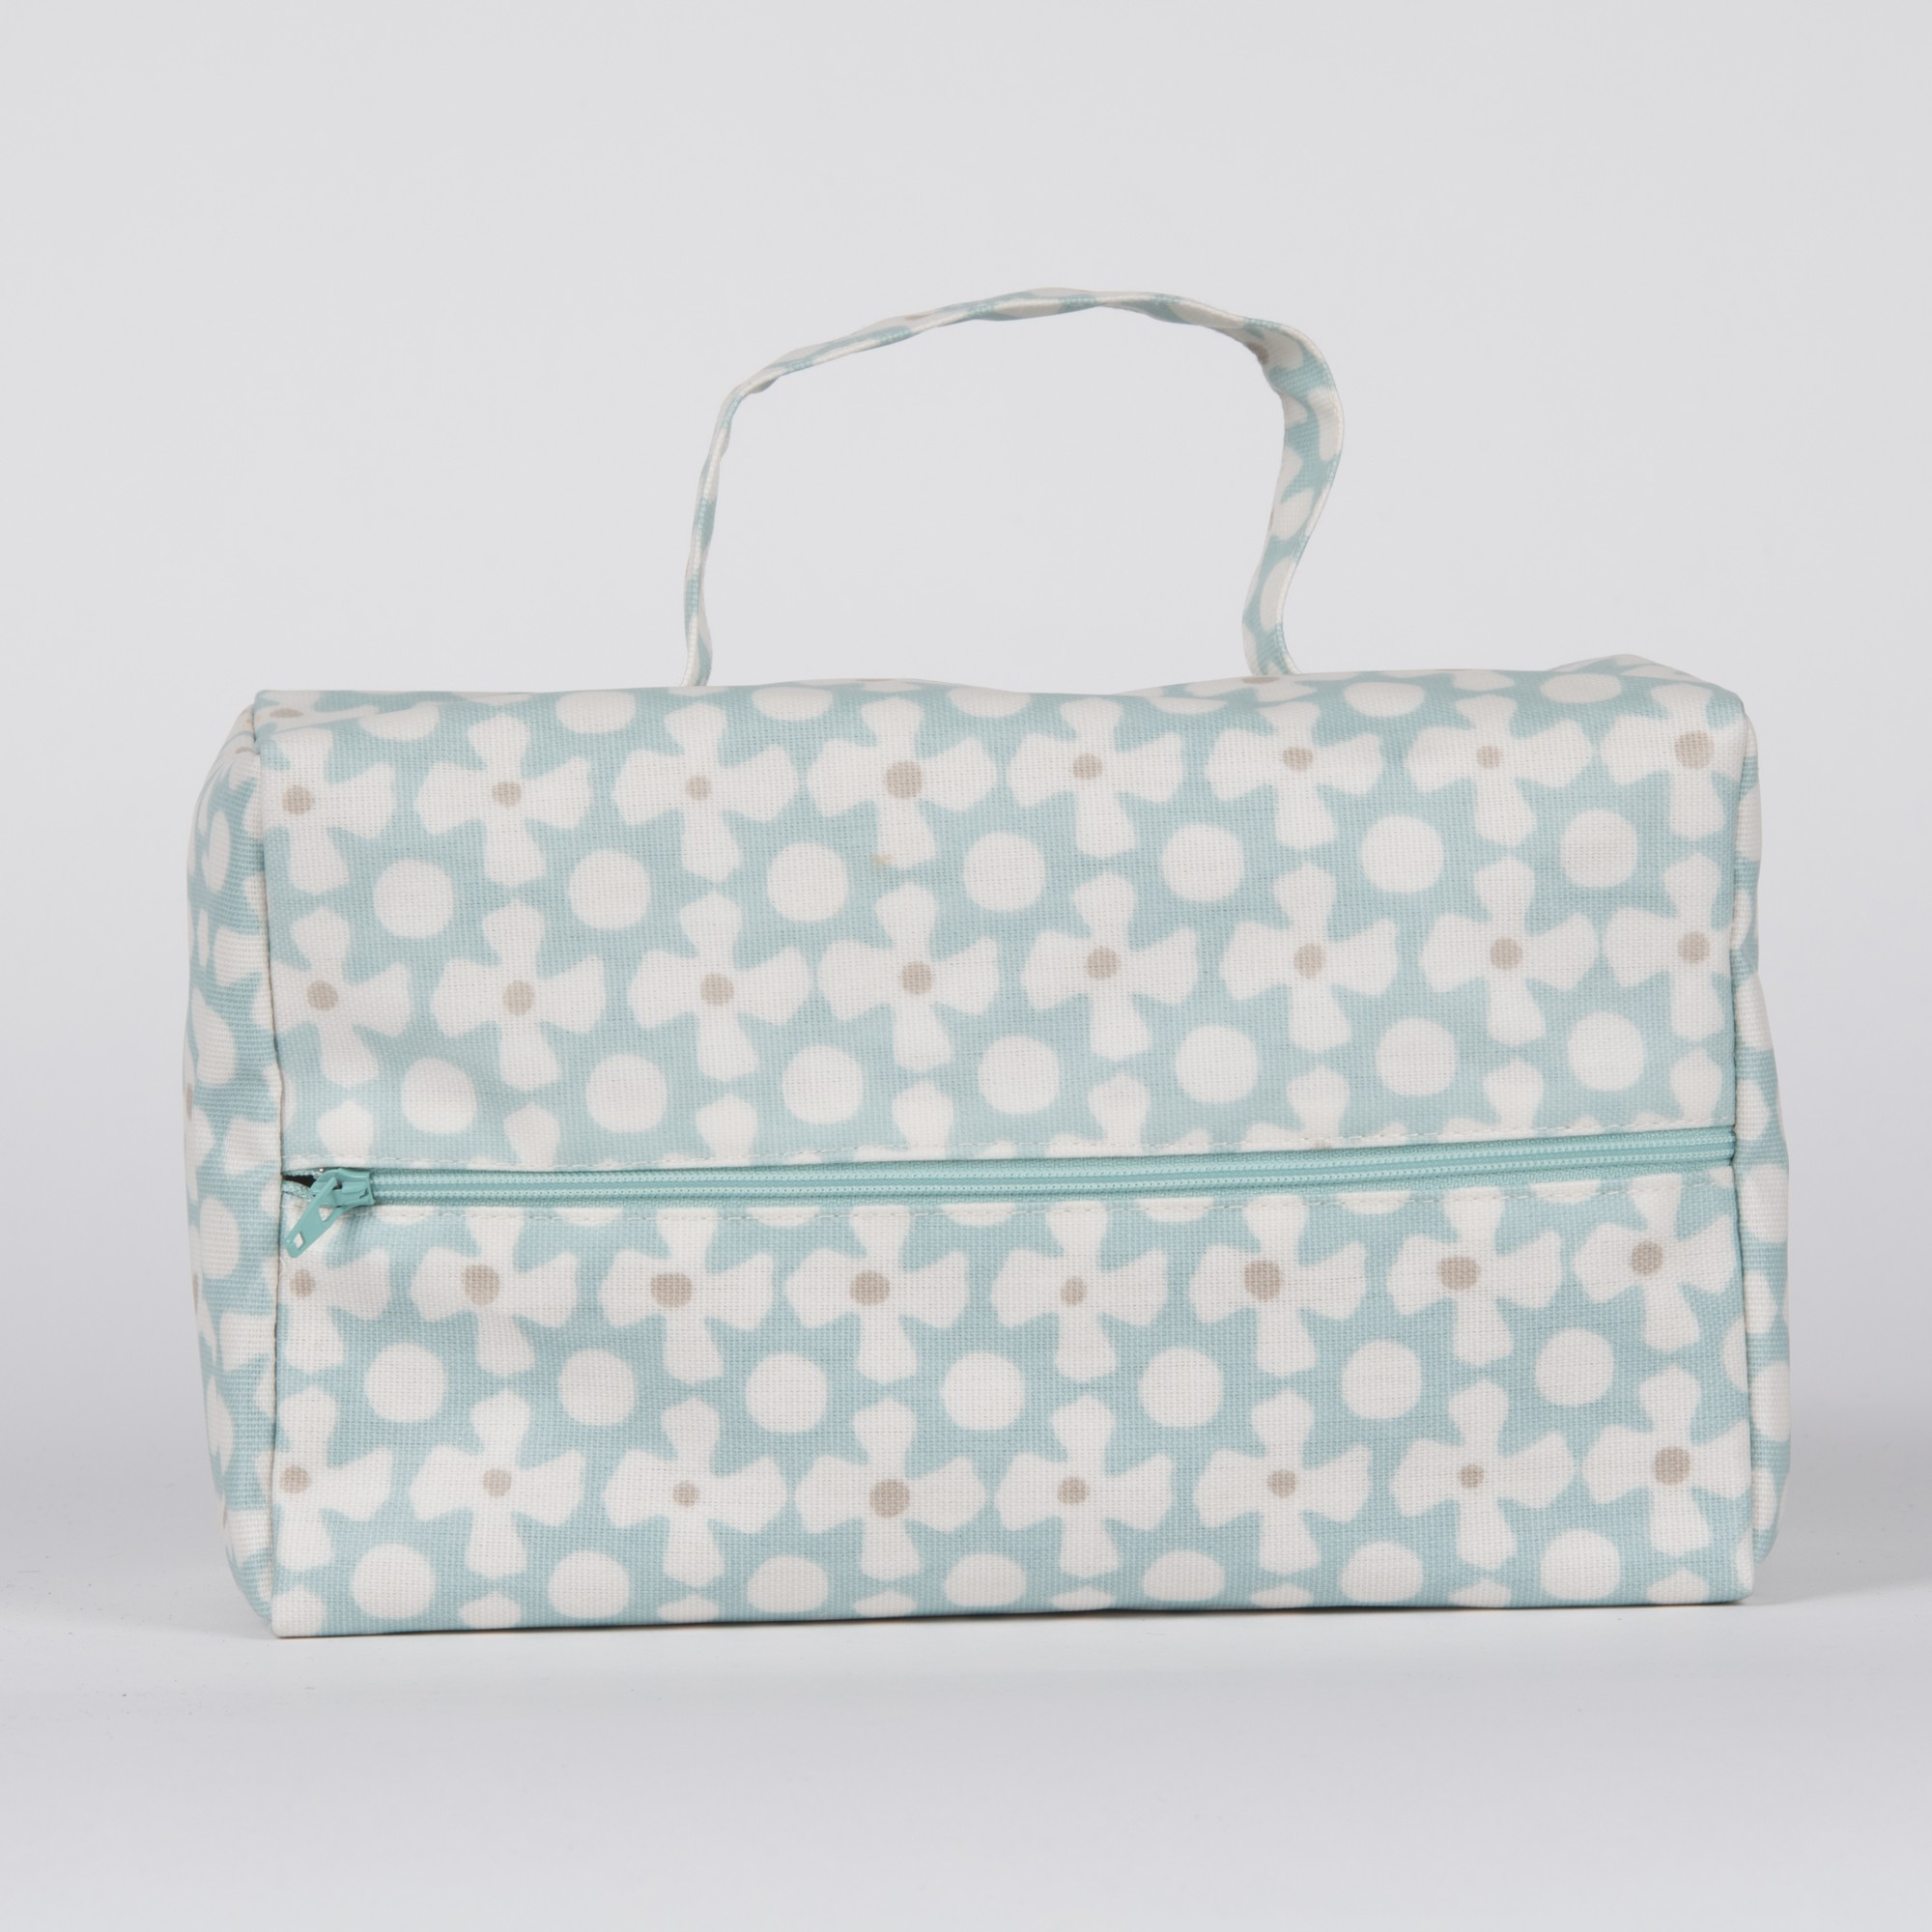 E-patron trousse Kate